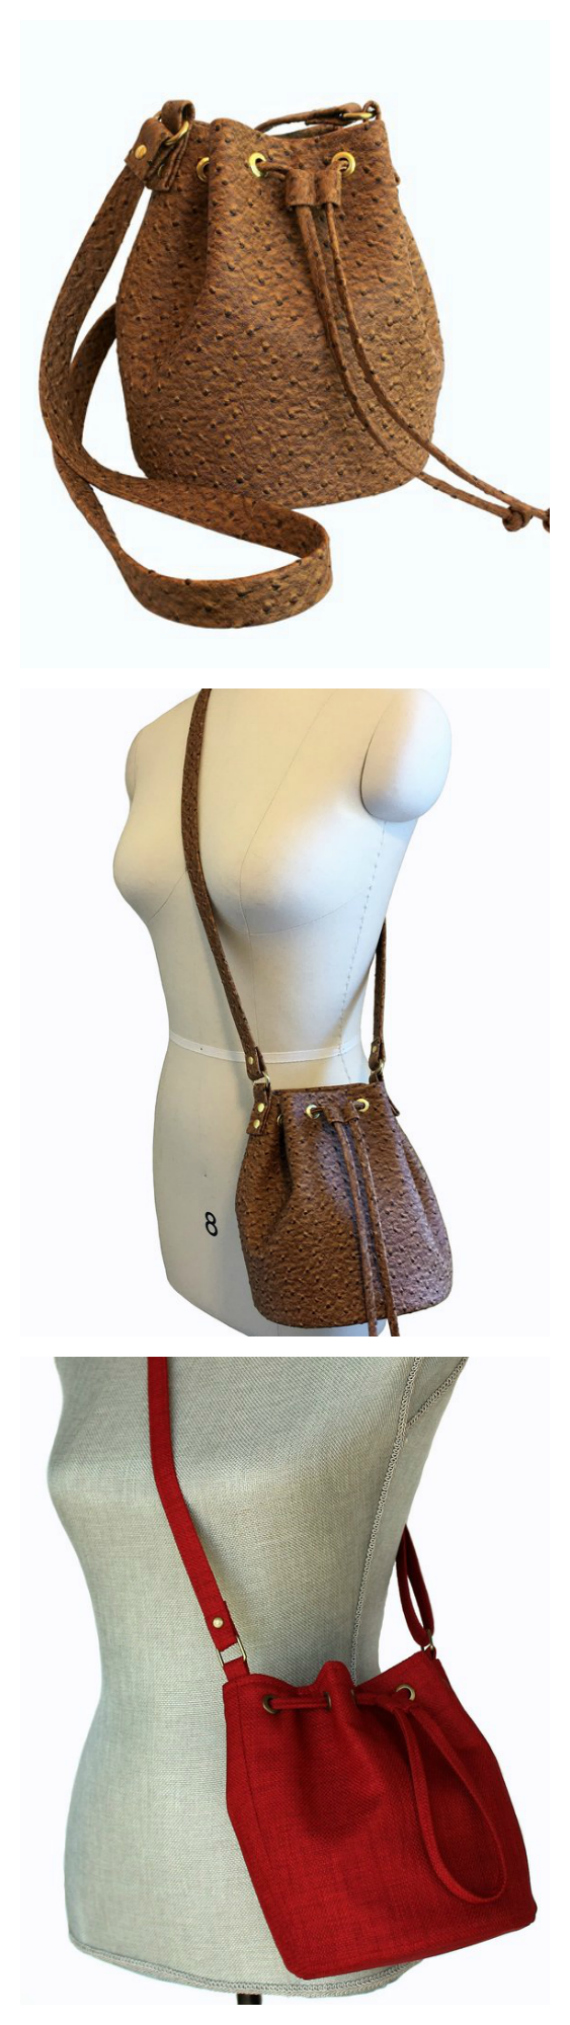 The chic size Mini Bucket Bag has the following features: 1. Big enough to hold essentials but smaller than the average size bucket bag pattern 2. Fully lined 3. An interior zippered pocket 4. A firm bag bottom allows this purse to stand on its own 5. Completely interfaced 6. Drawstring closure and slider with grommets makes it easy to open and close.